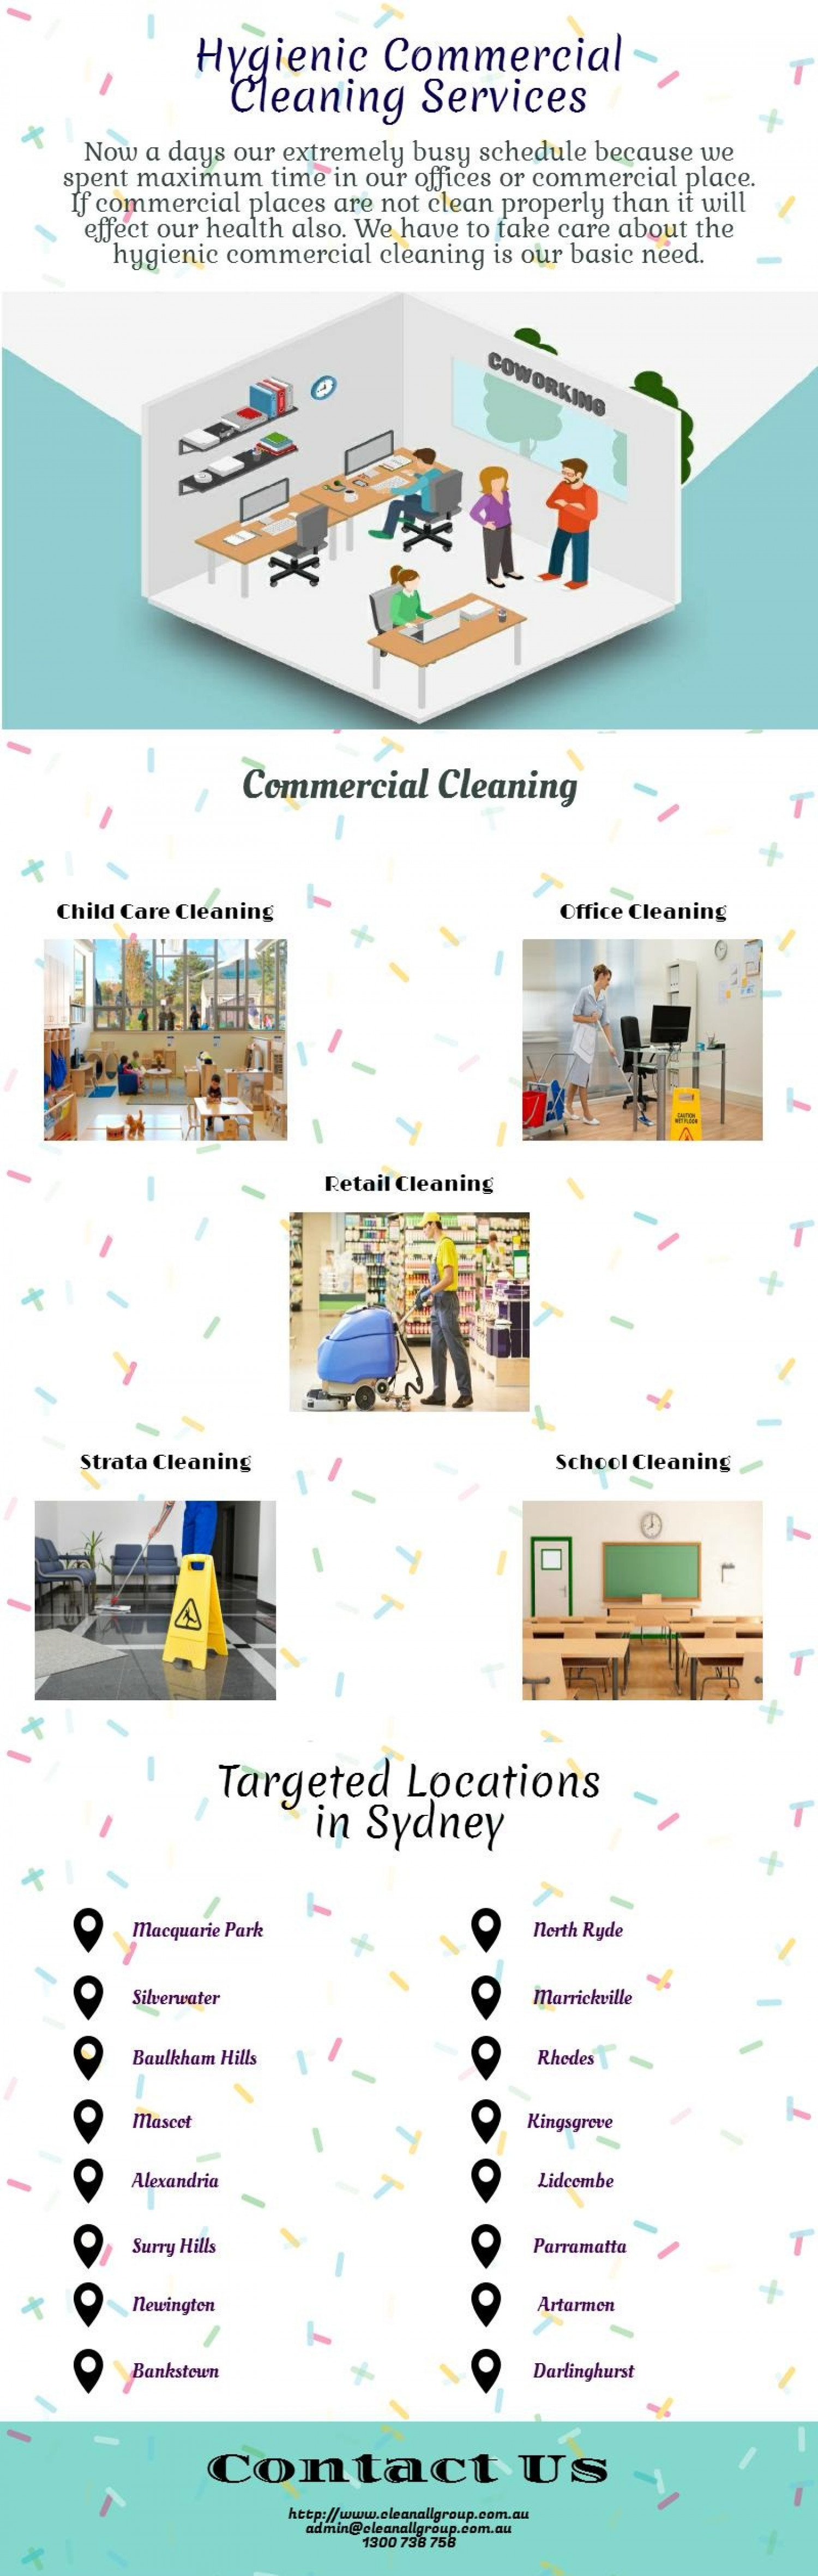 Commercial Cleaning Services Sydney Infographic